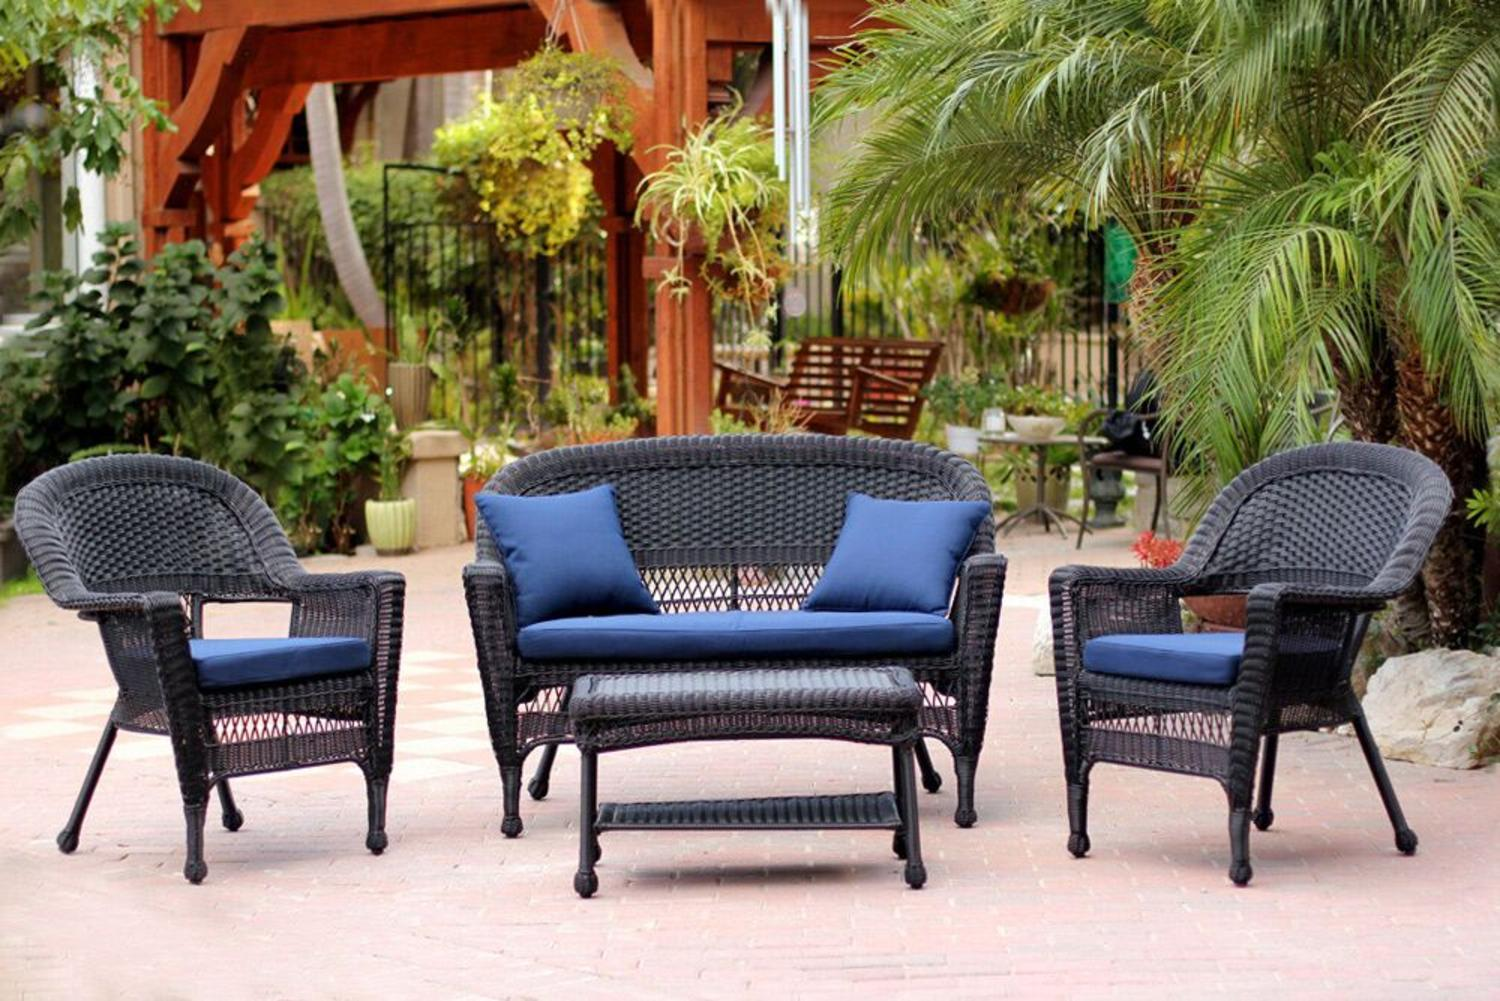 walmart wicker patio furniture sets 4-Piece Black Wicker Patio Chair, Loveseat & Table